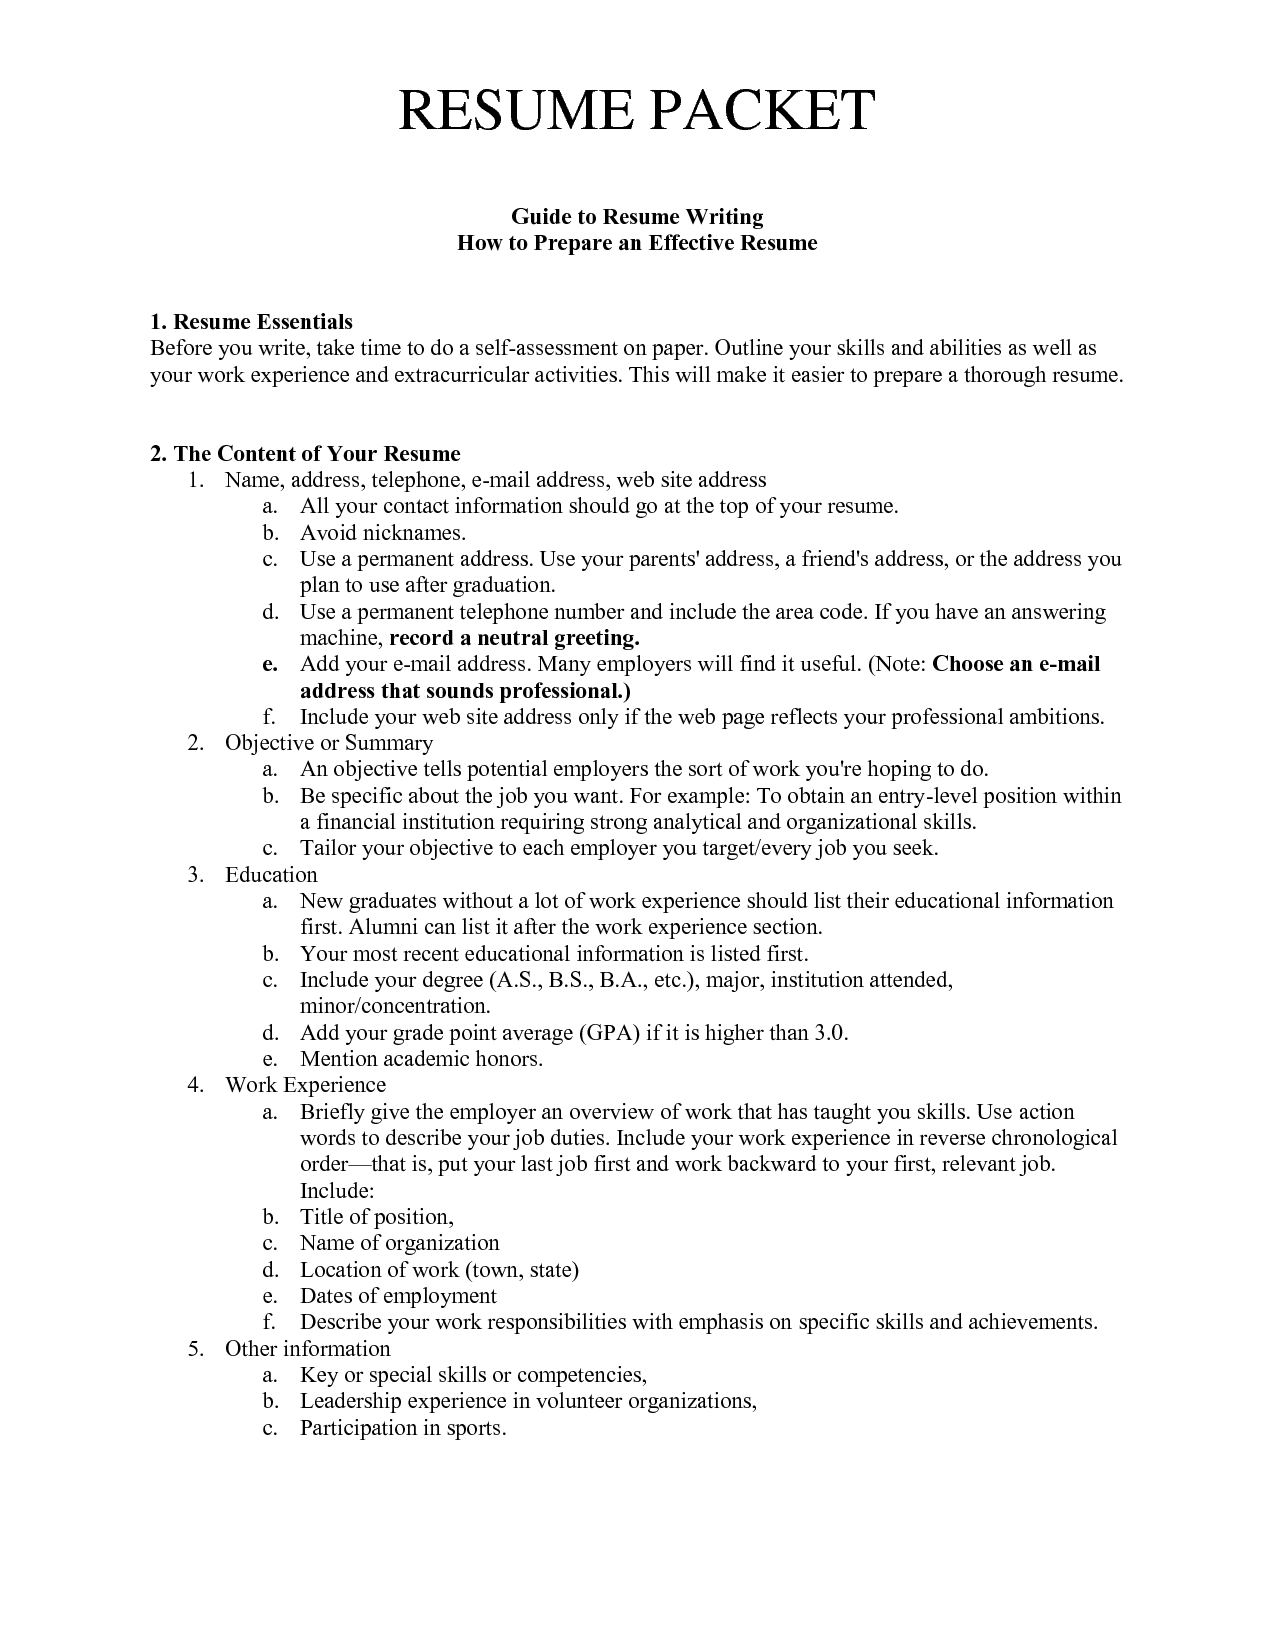 Guide To Resume Writing How To Prepare An Effective Resume